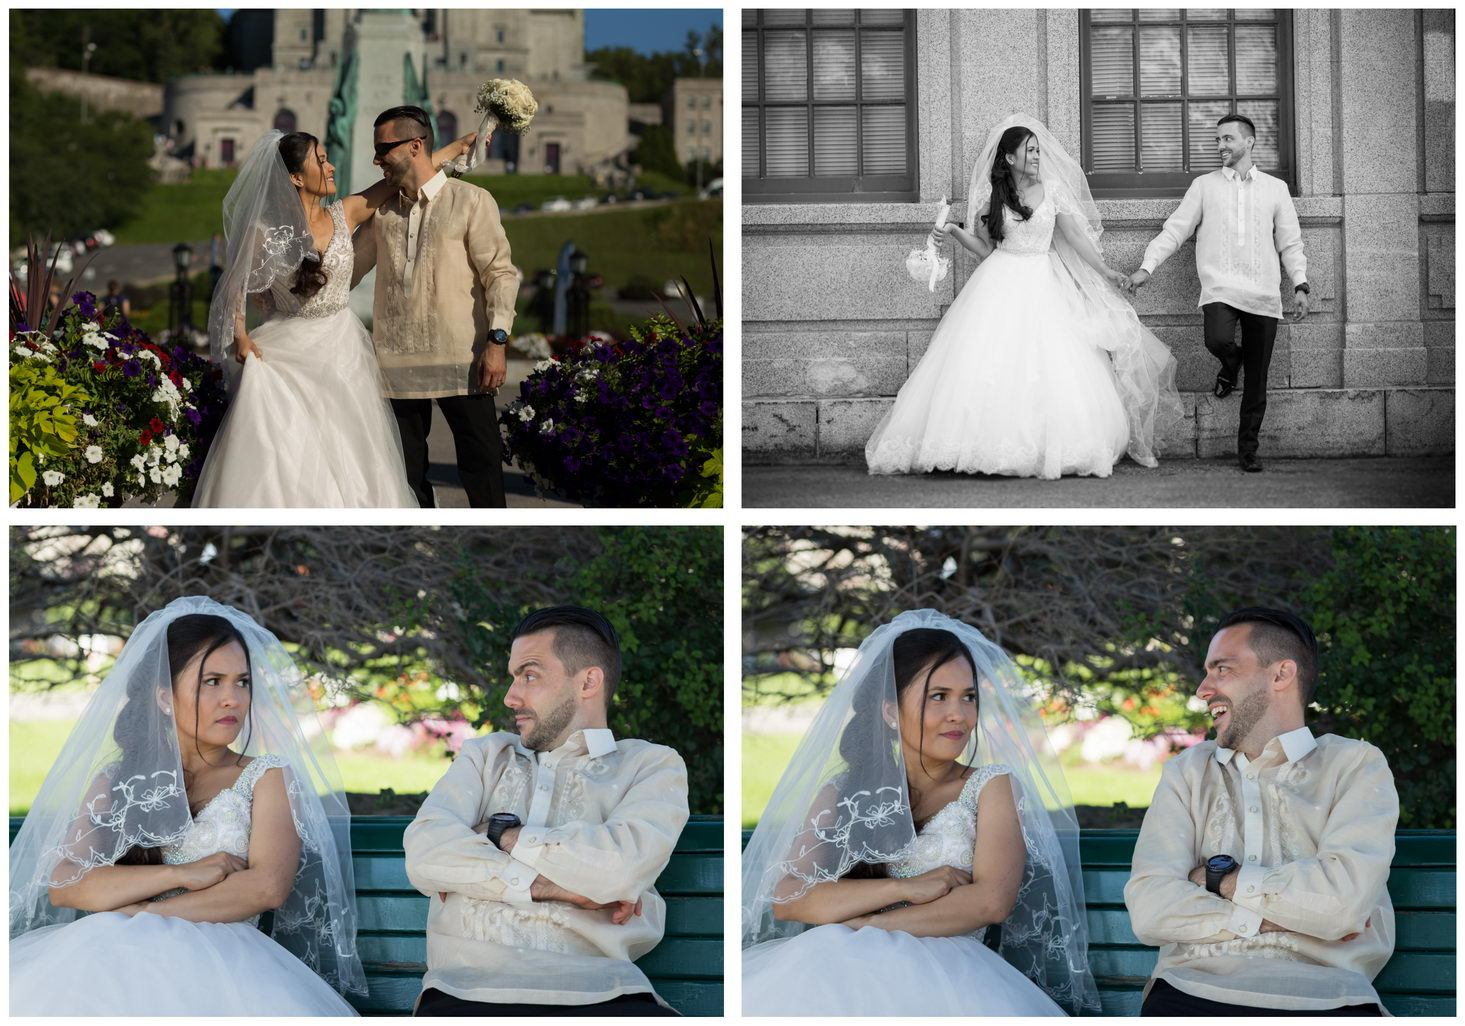 Professional Wedding Photographers tips